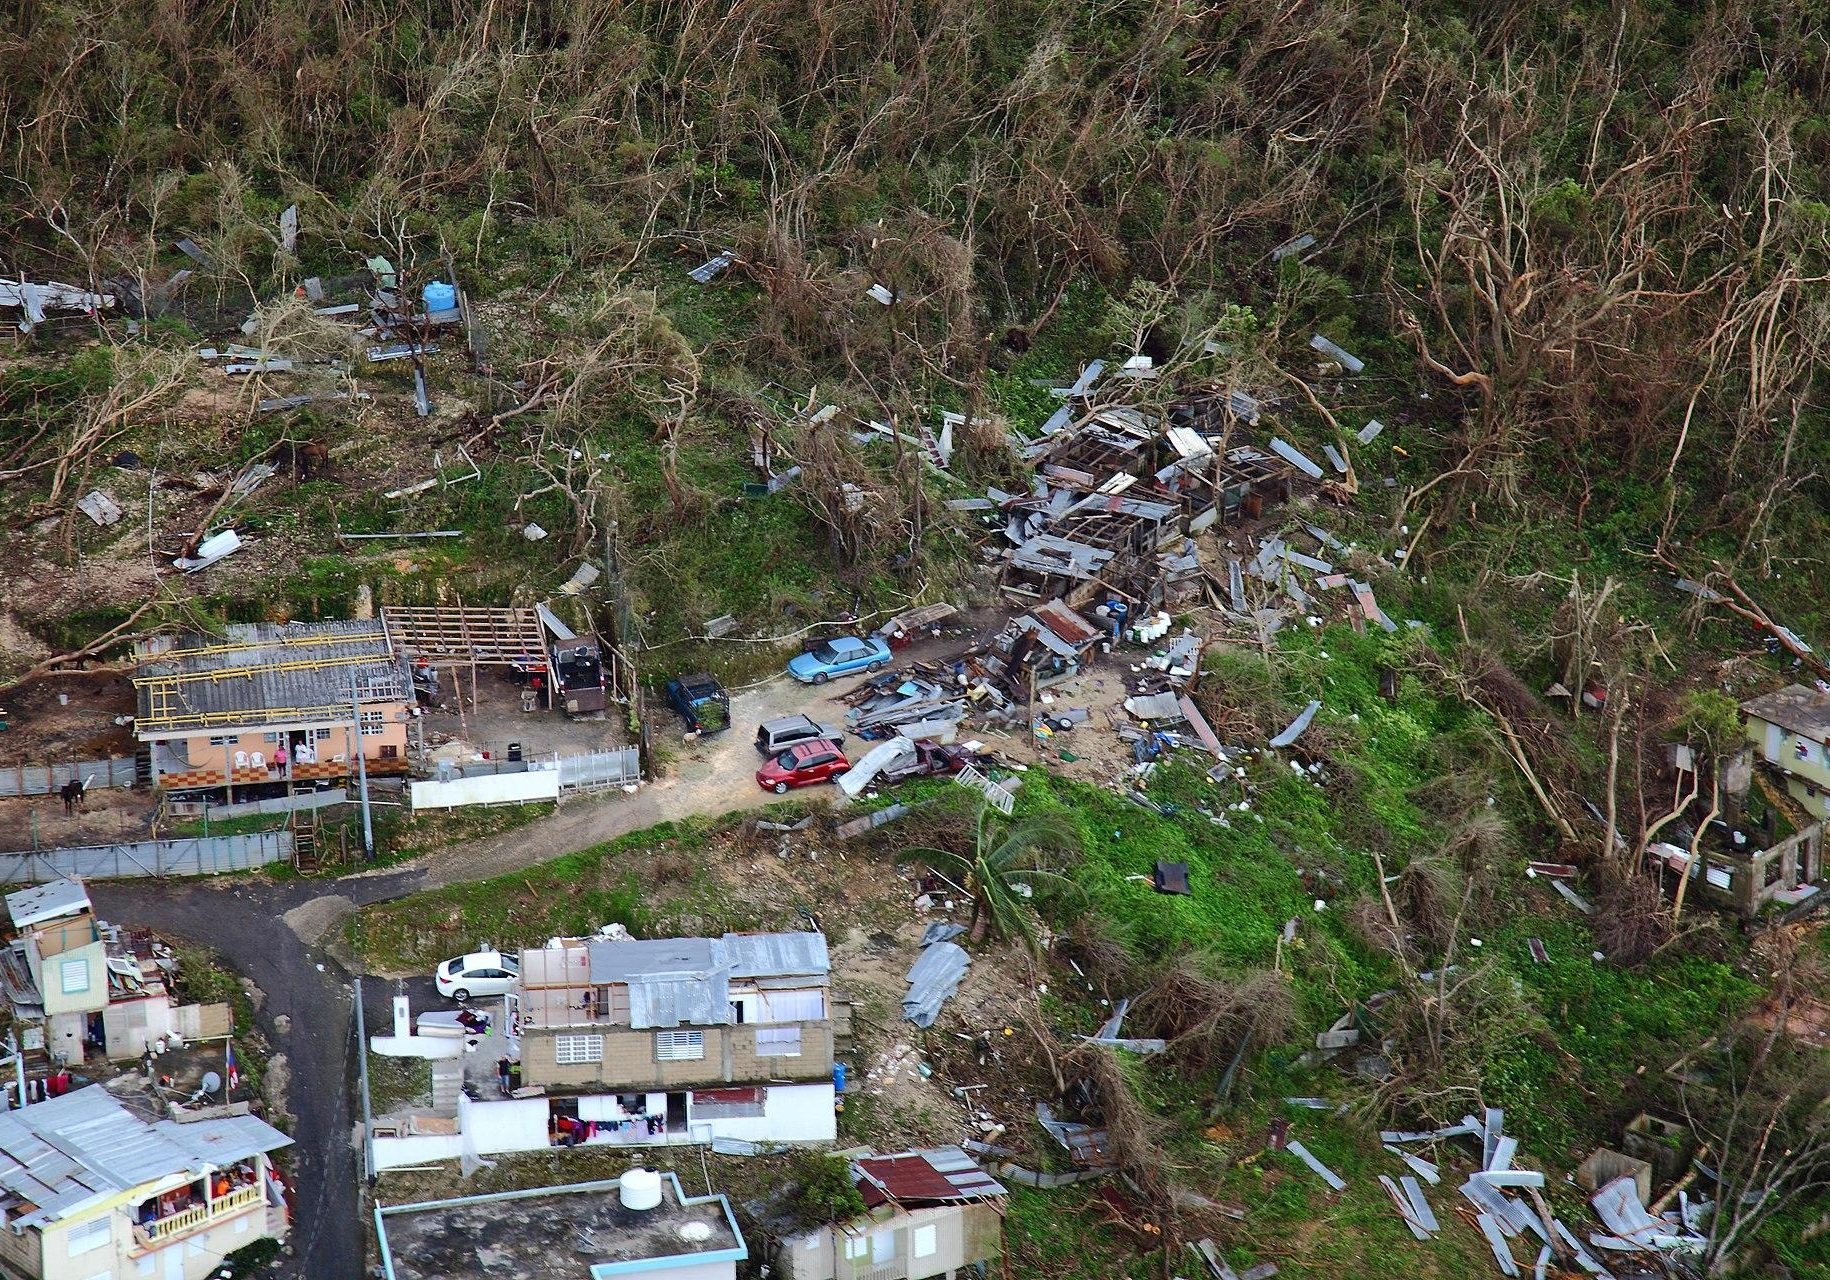 Homes lay in ruin as seen from a U.S. Customs and Border Protection, Air and Marine Operations, Black Hawk during a flyover of Puerto Rico after Hurricane Maria September 23, 2017. Photo by Kris Grogan for U.S. Customs and Border Protection